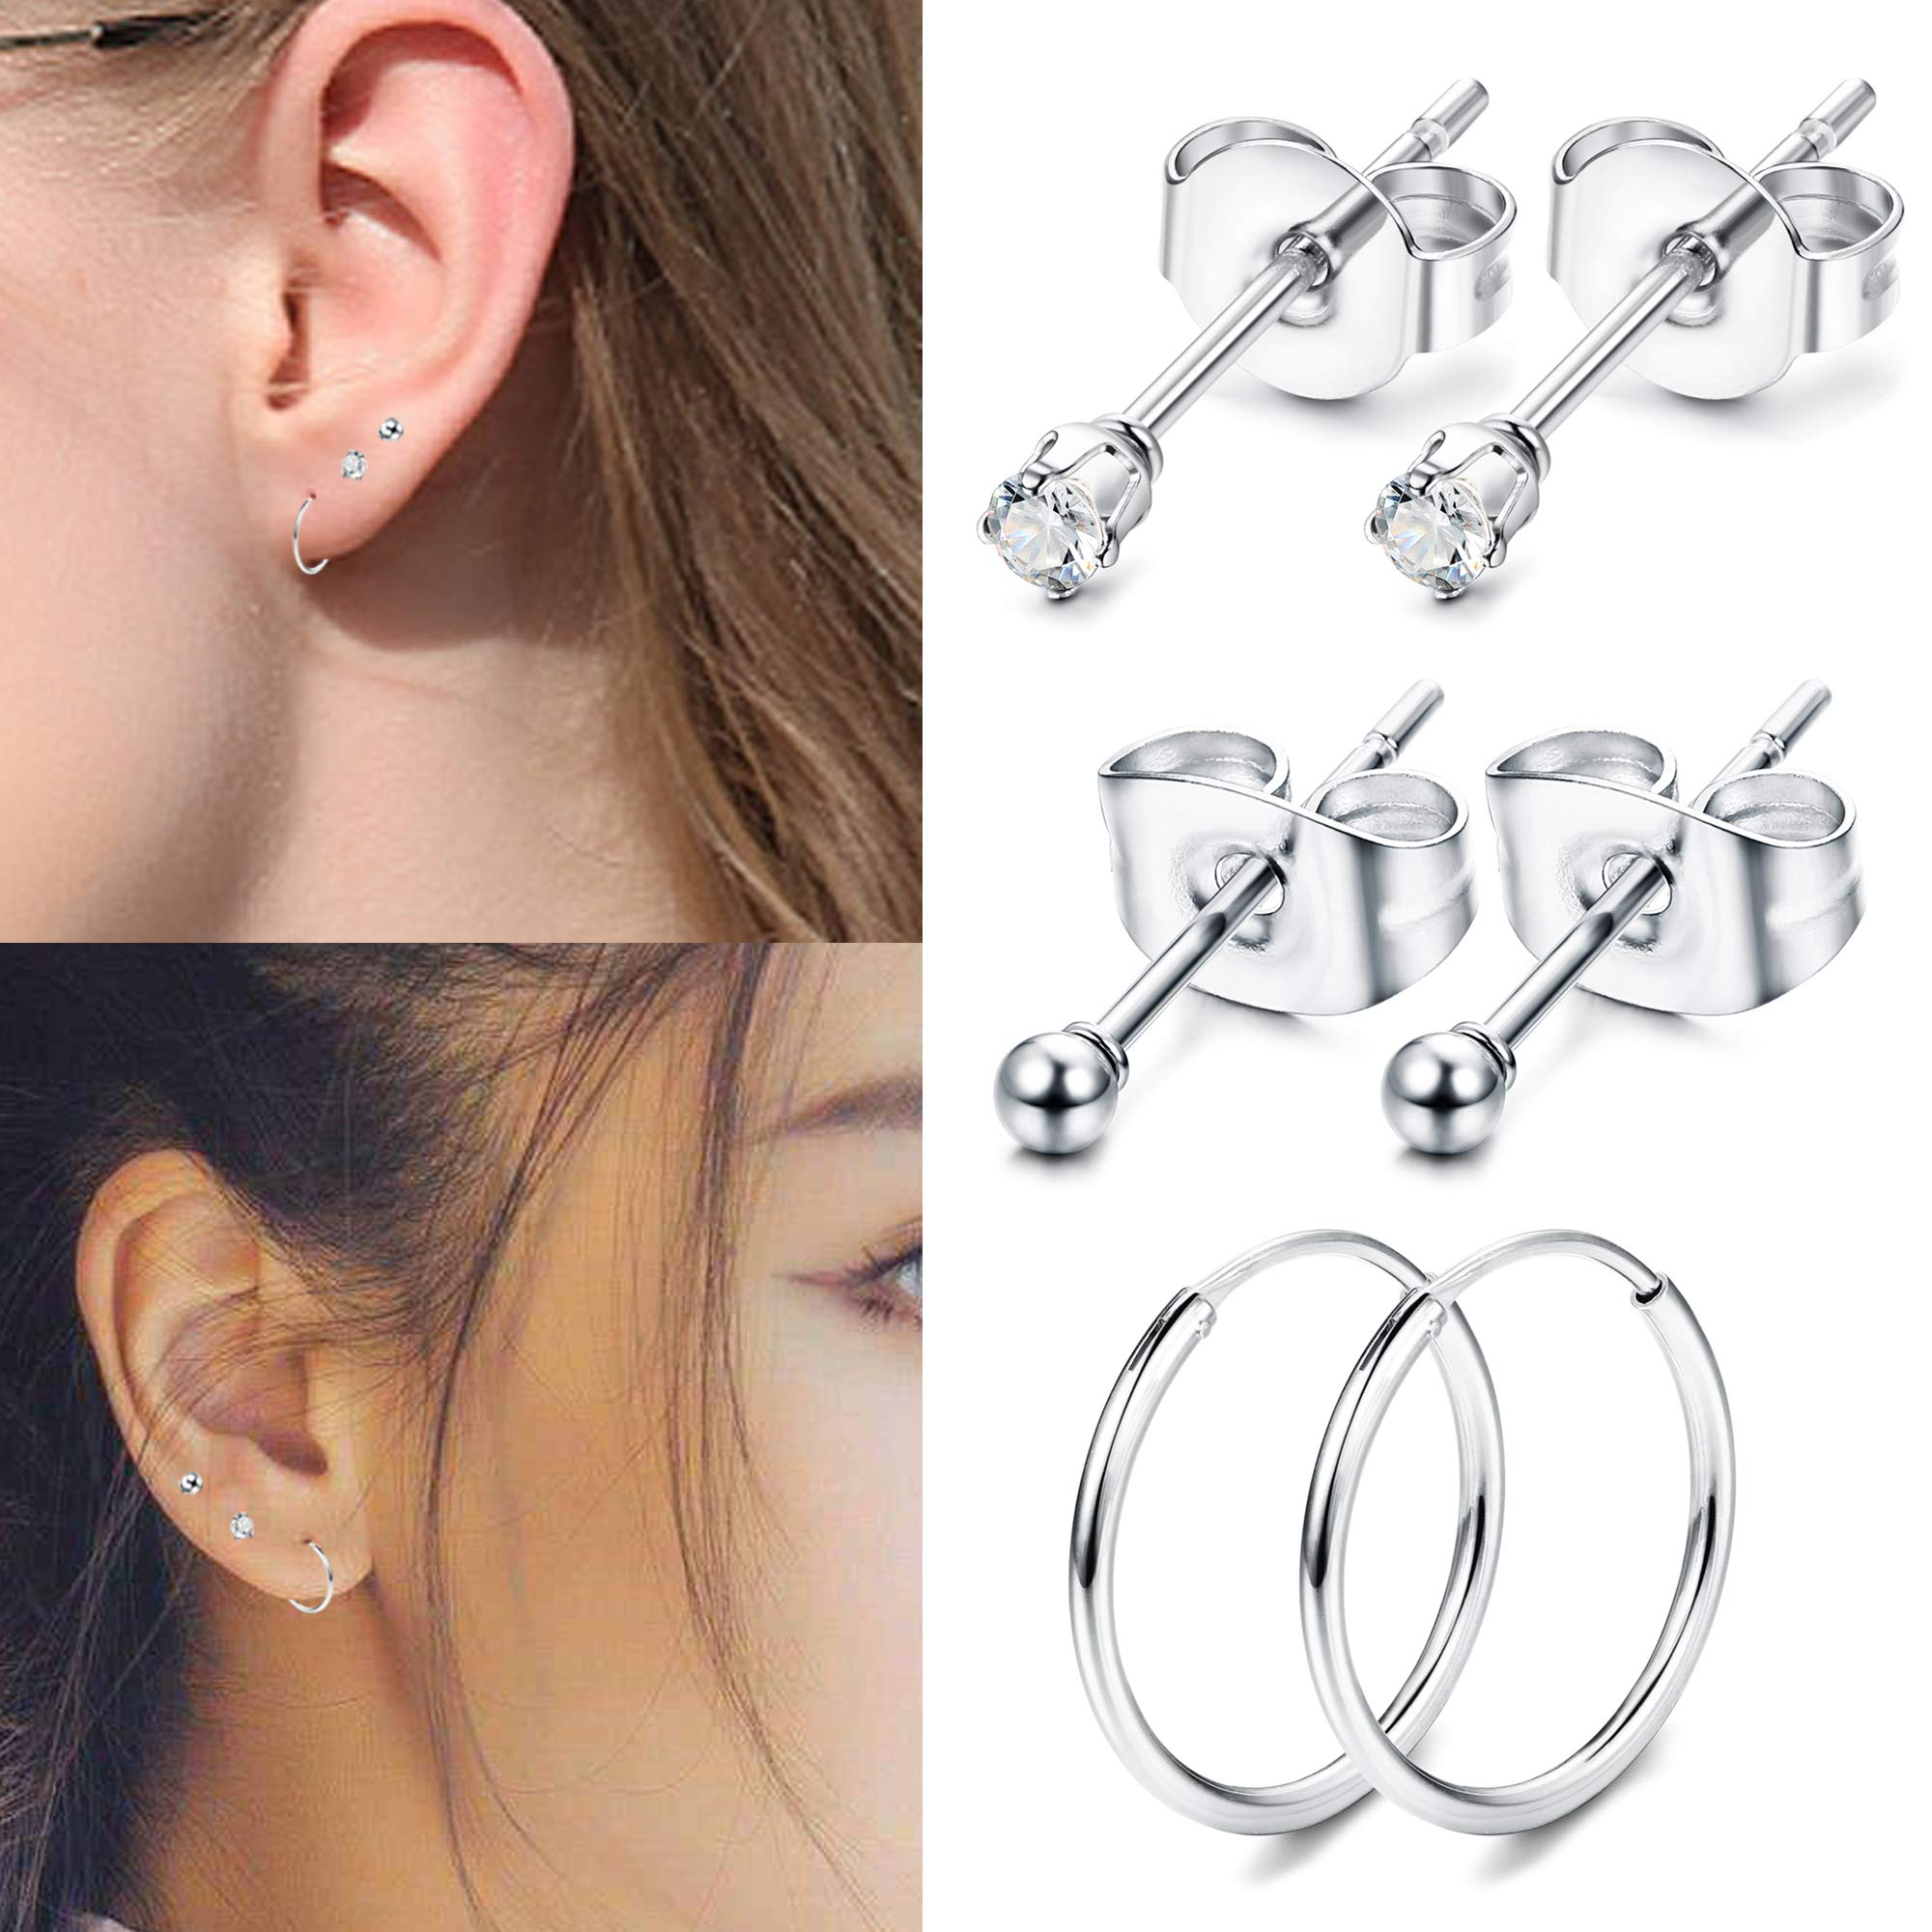 Yadoca 3 Pairs 925 sterling silver stud earrings for man women steel ball CZ stud hoop piercing earrings set